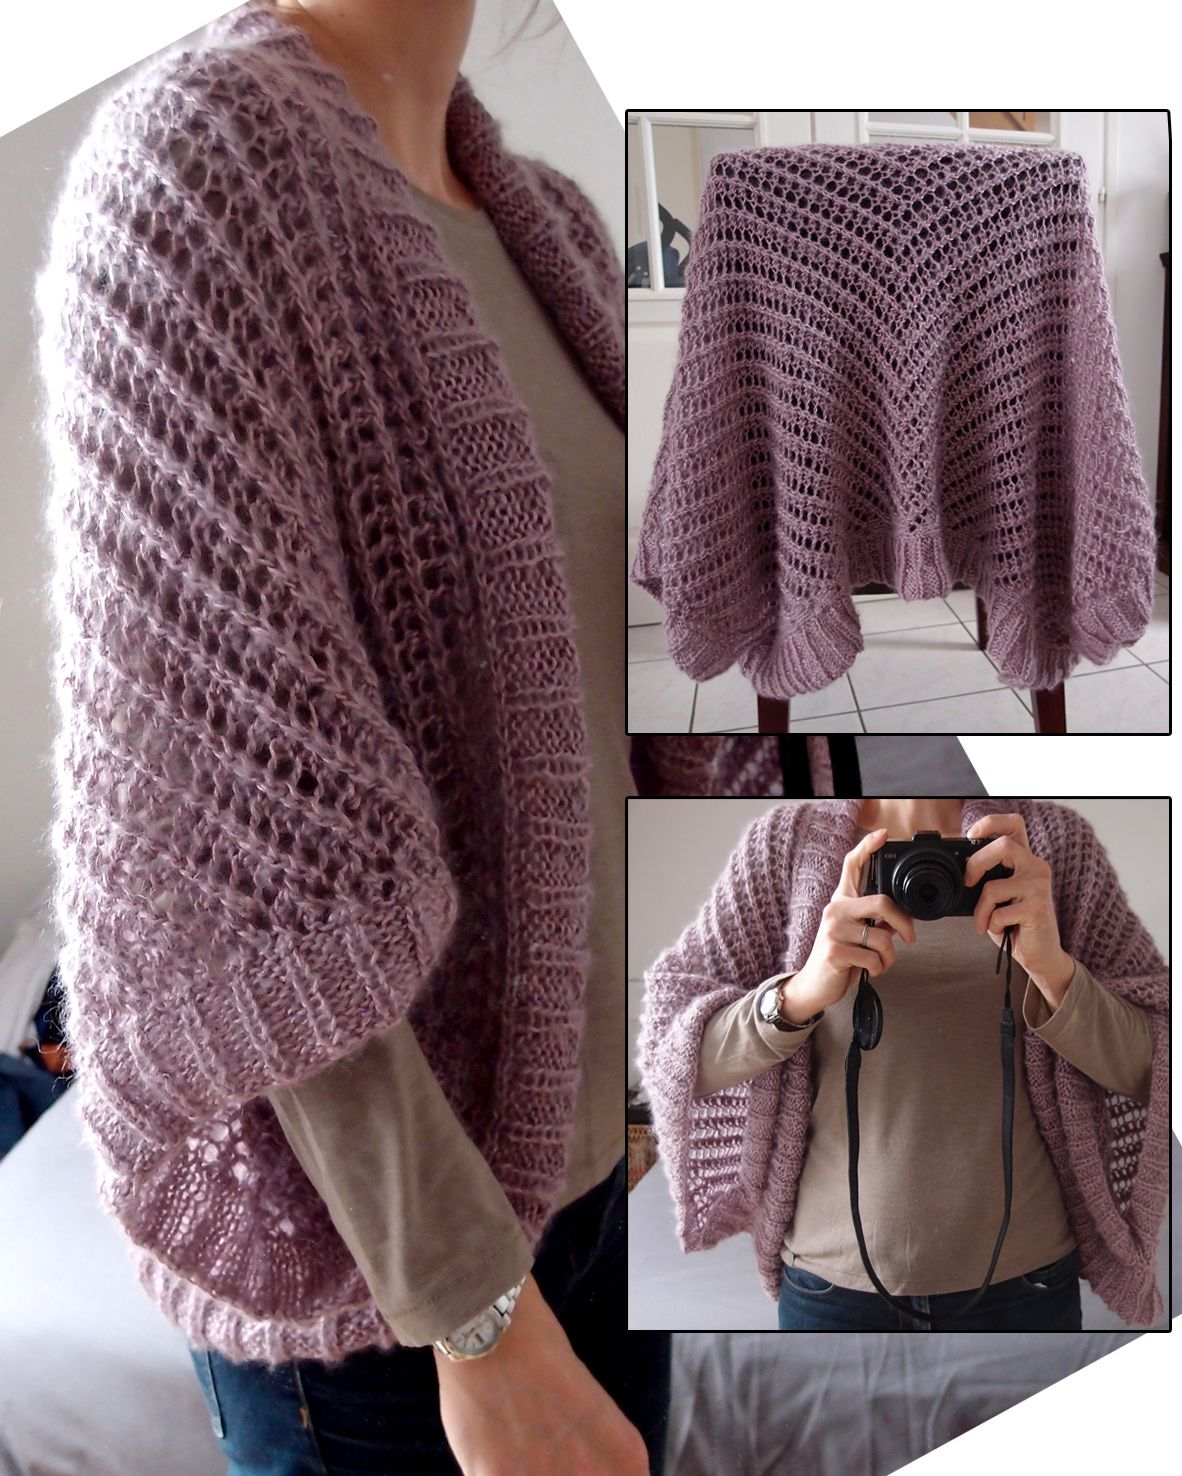 Free Knitting Pattern for Lace Sweater Wrap -This lace cardigan is ...